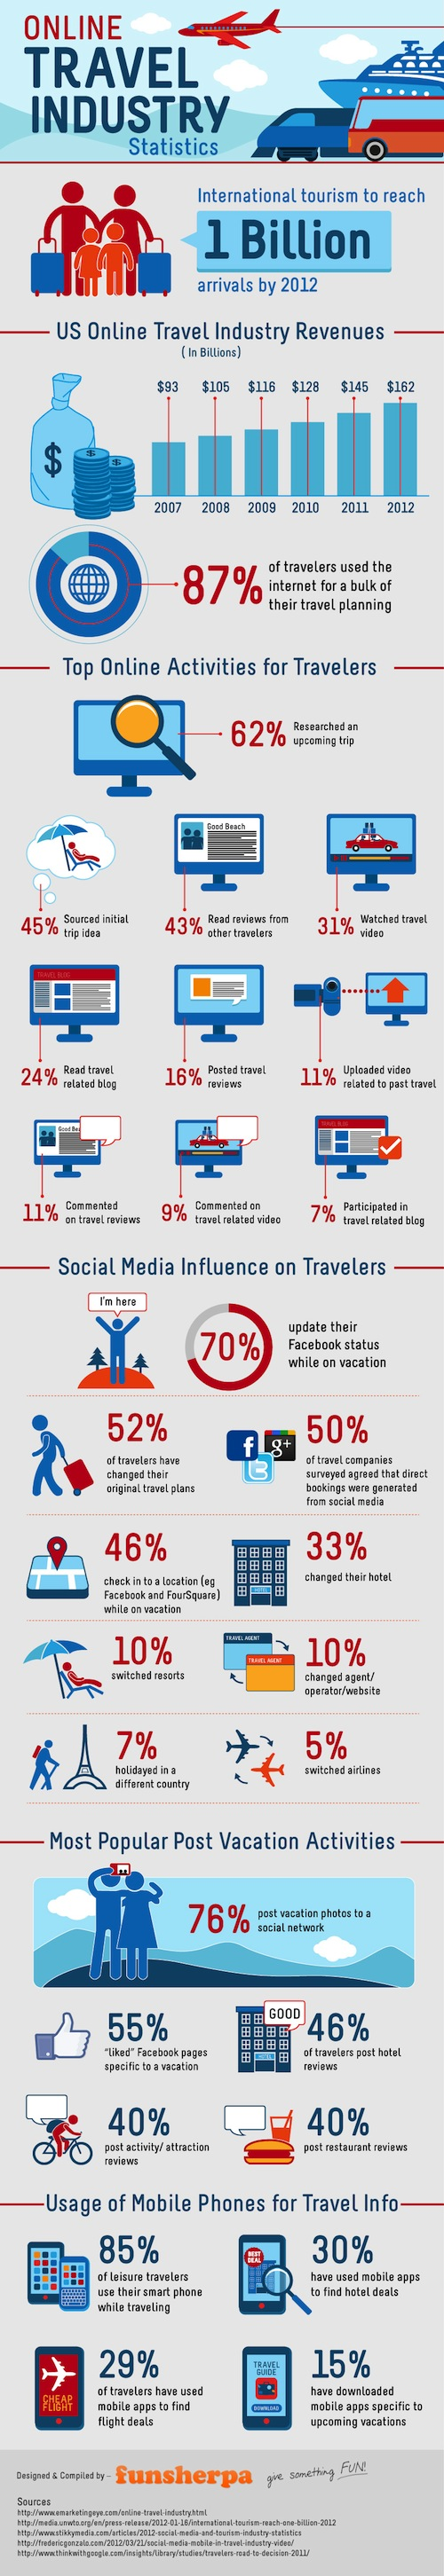 online travel industry stats infographic